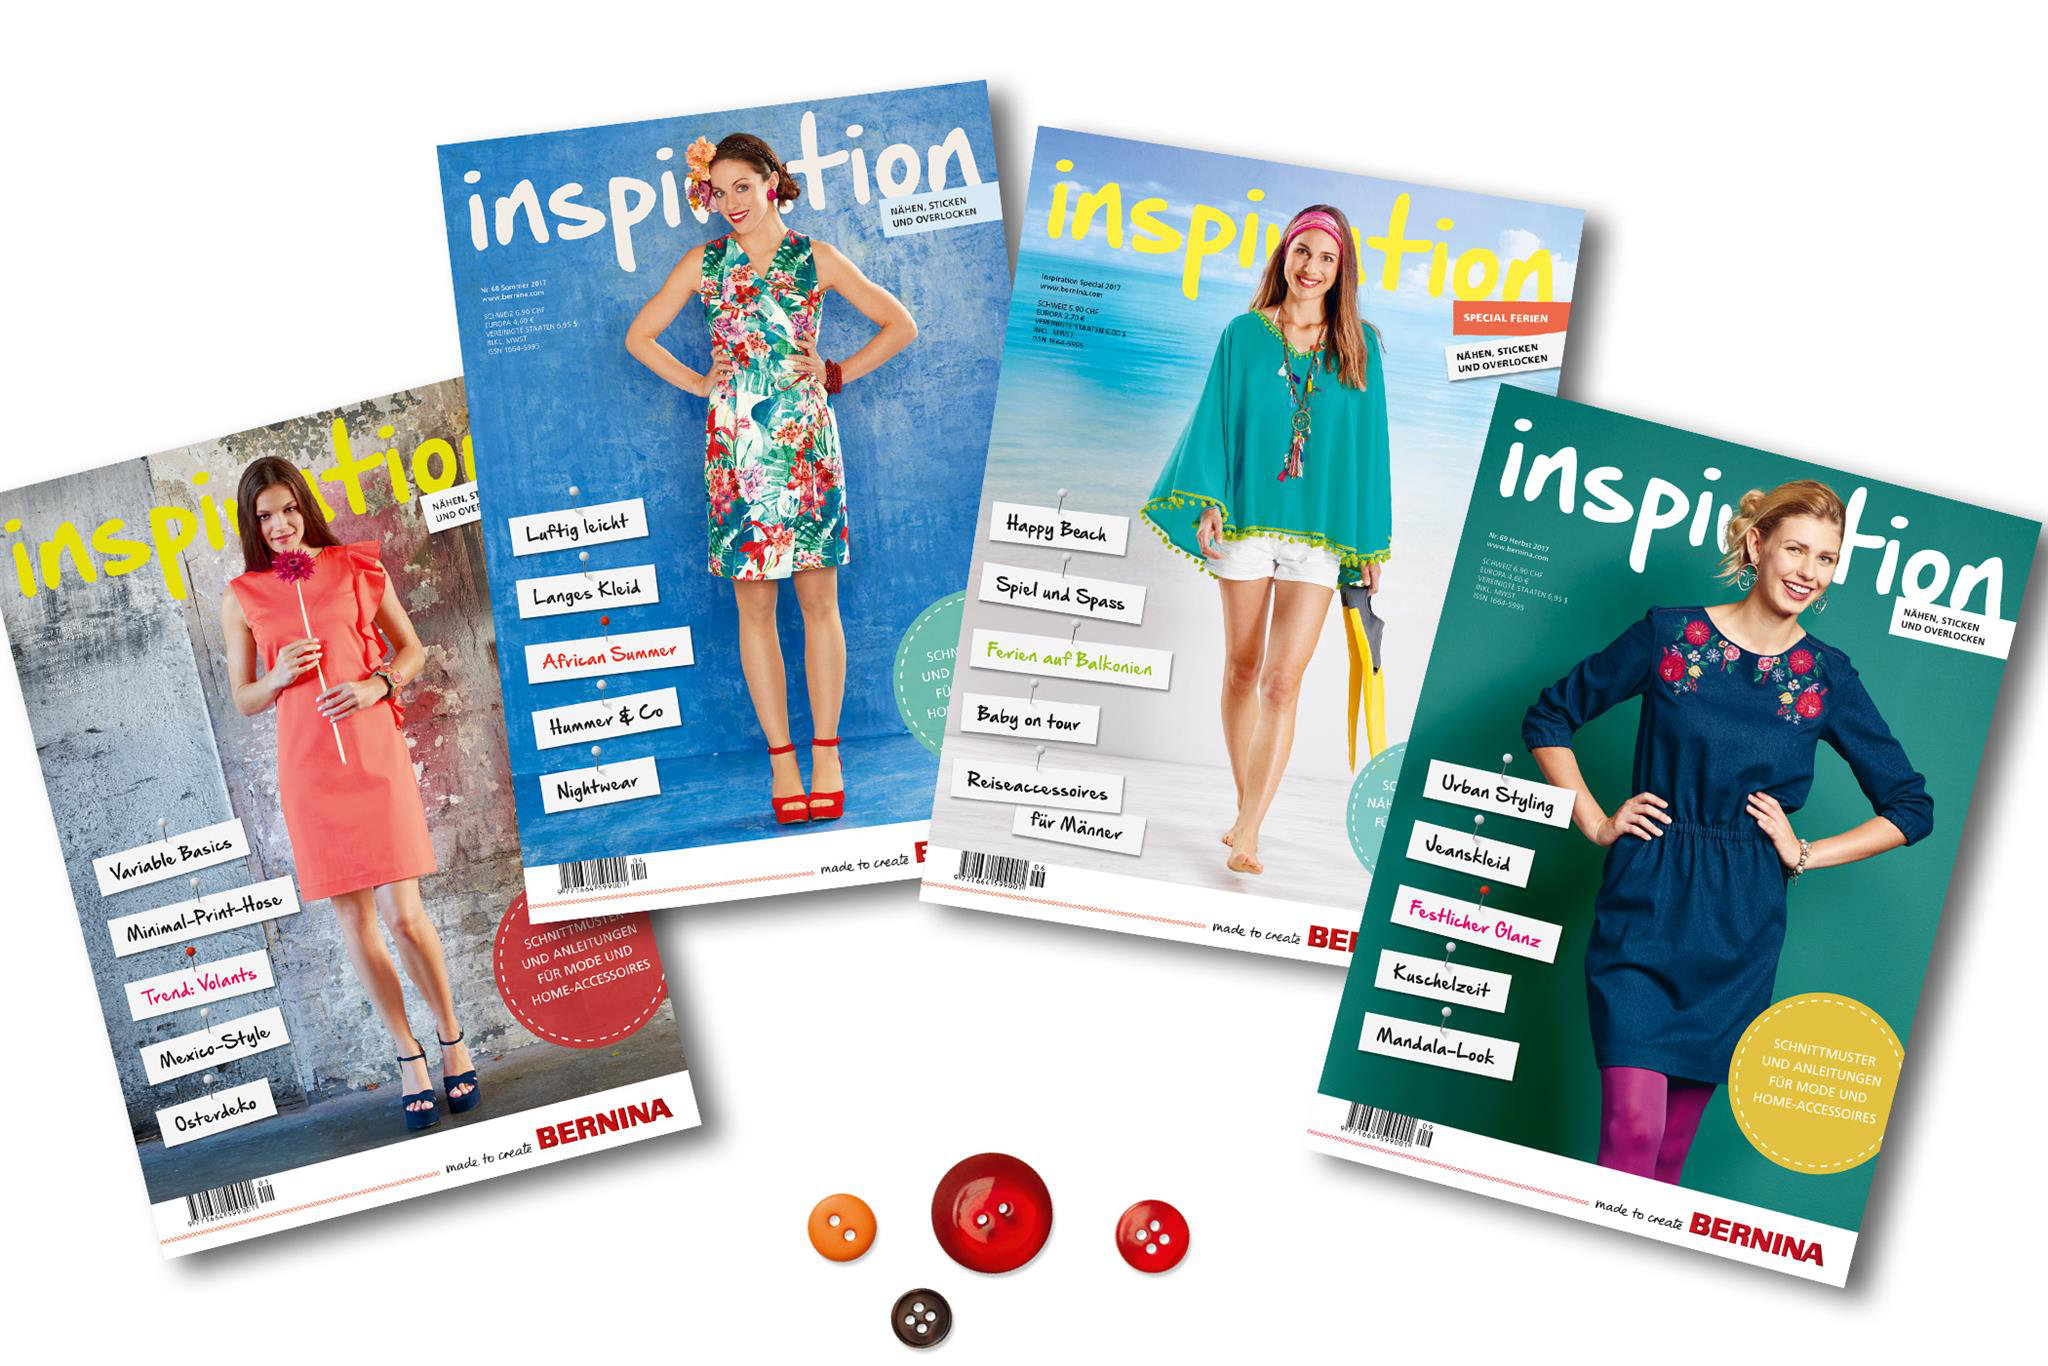 Inspiration Magazin